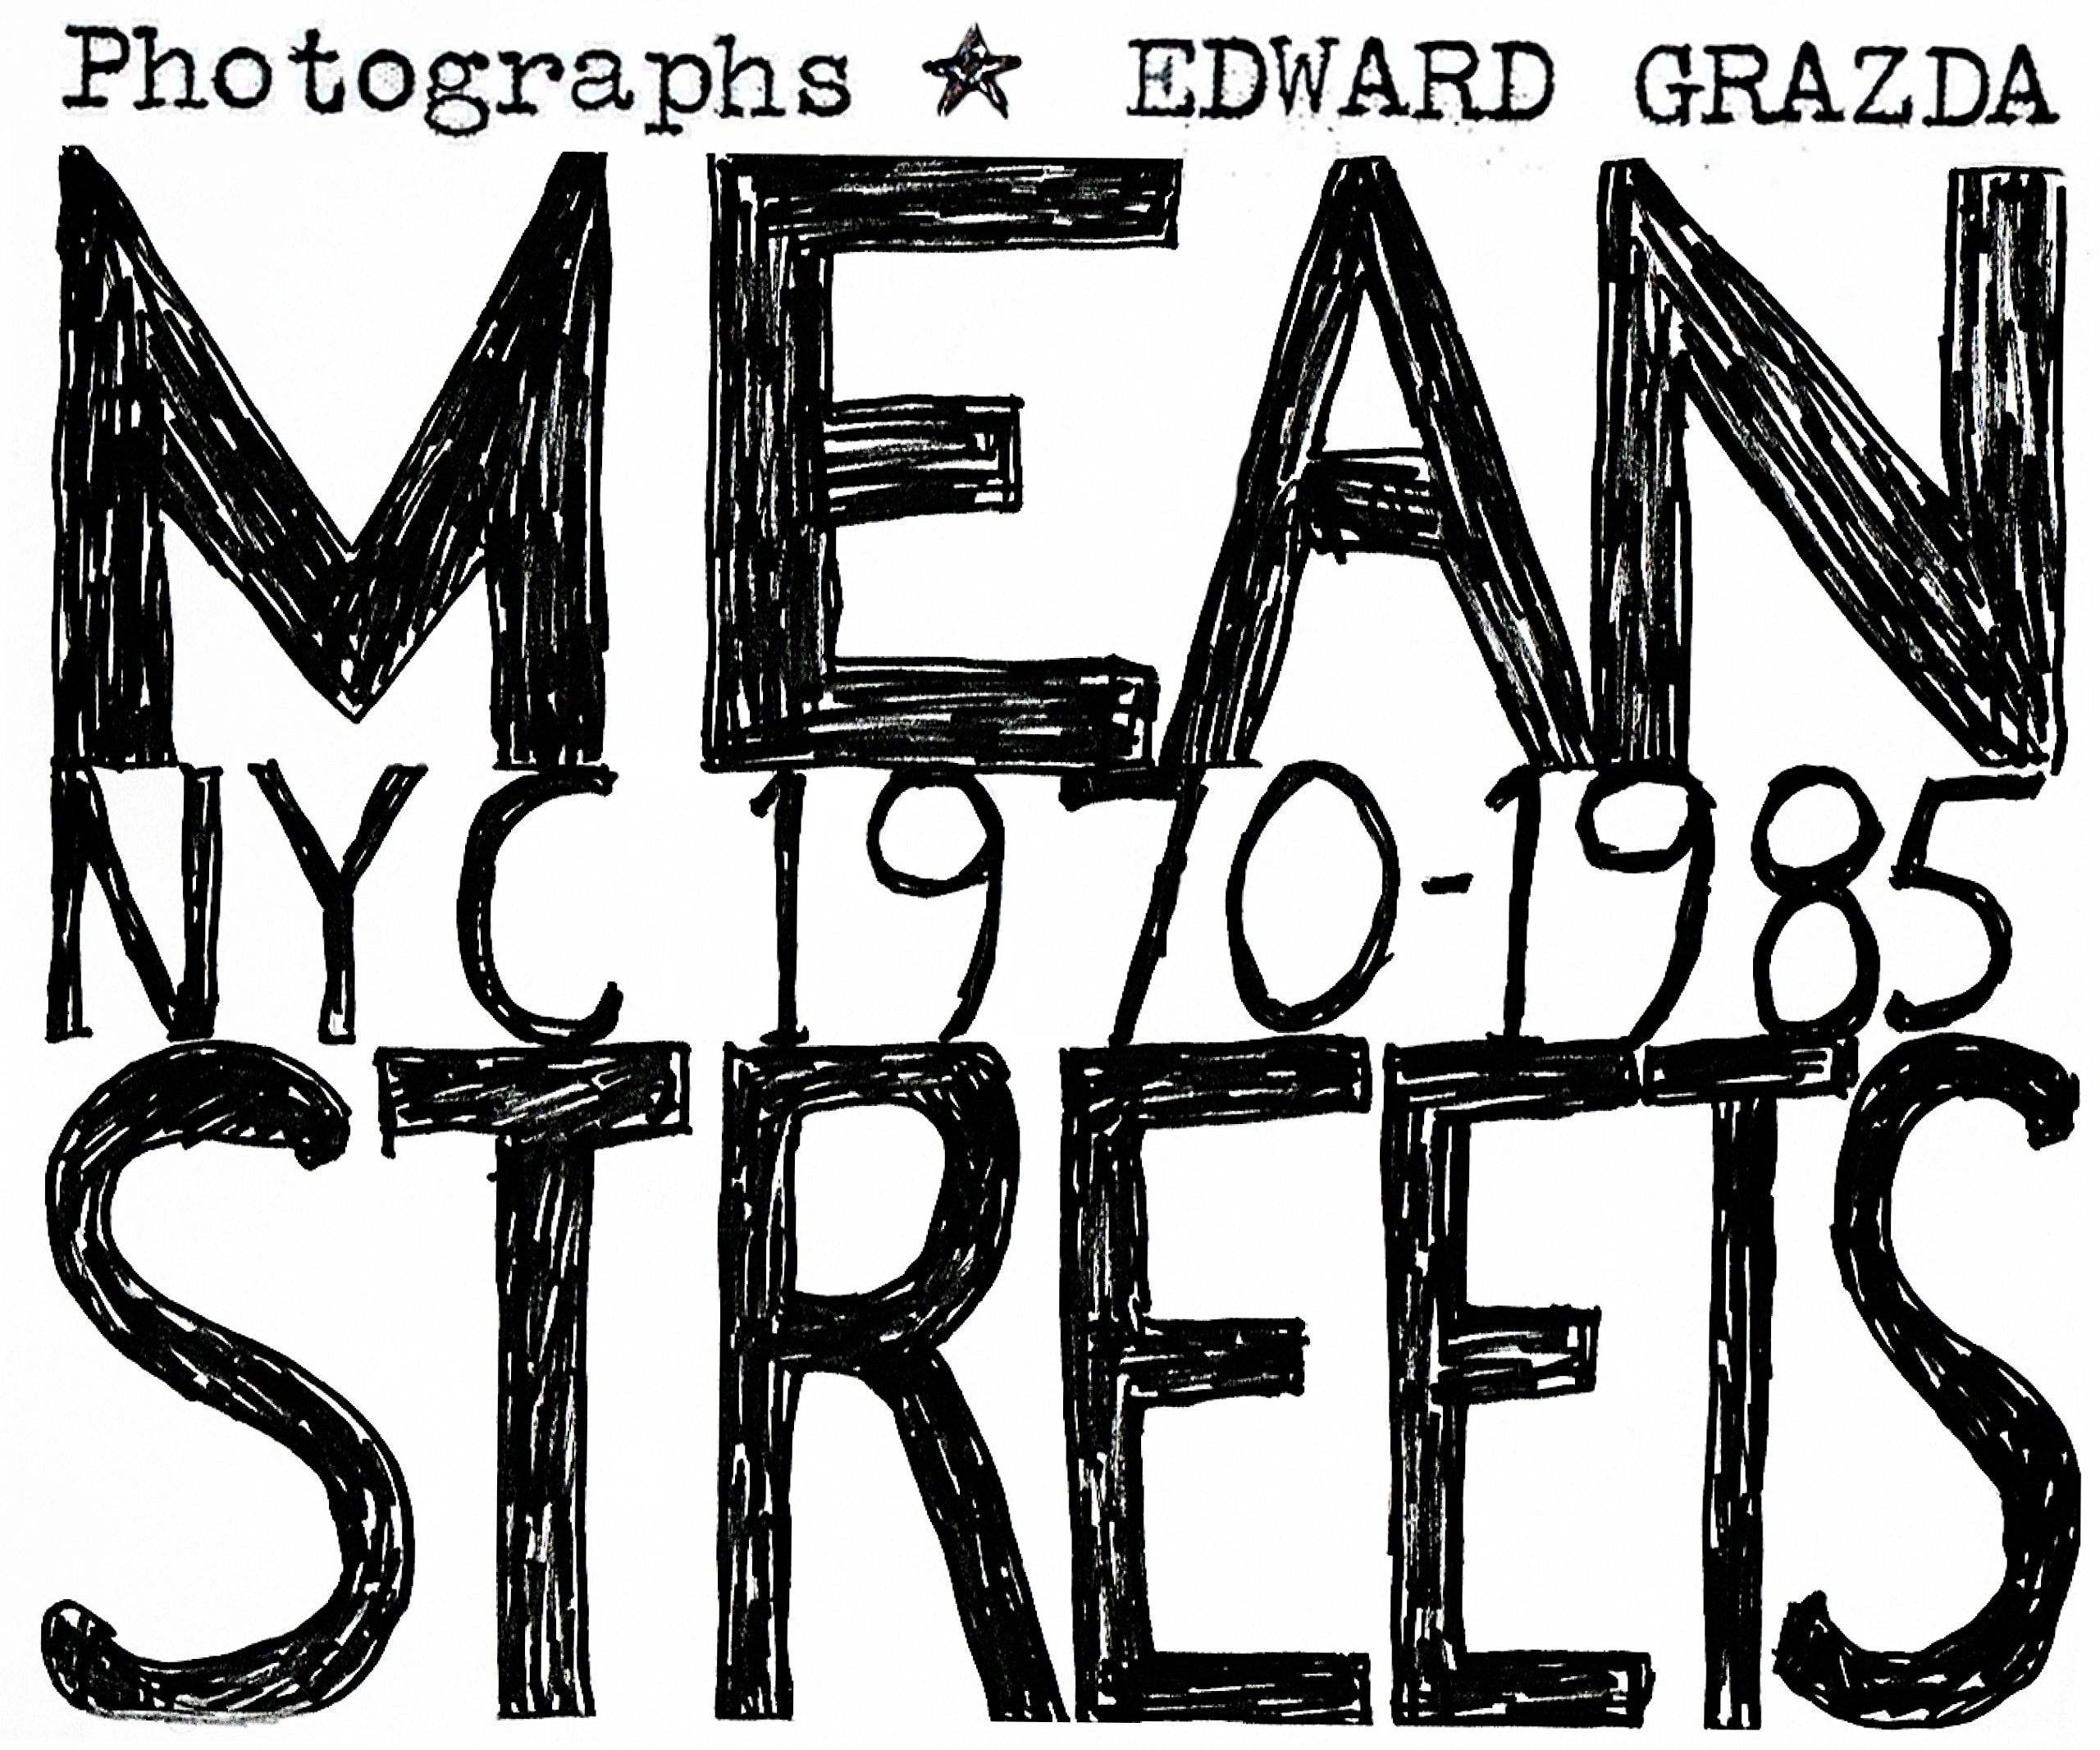 Mean Streets  NYC 1970 1985